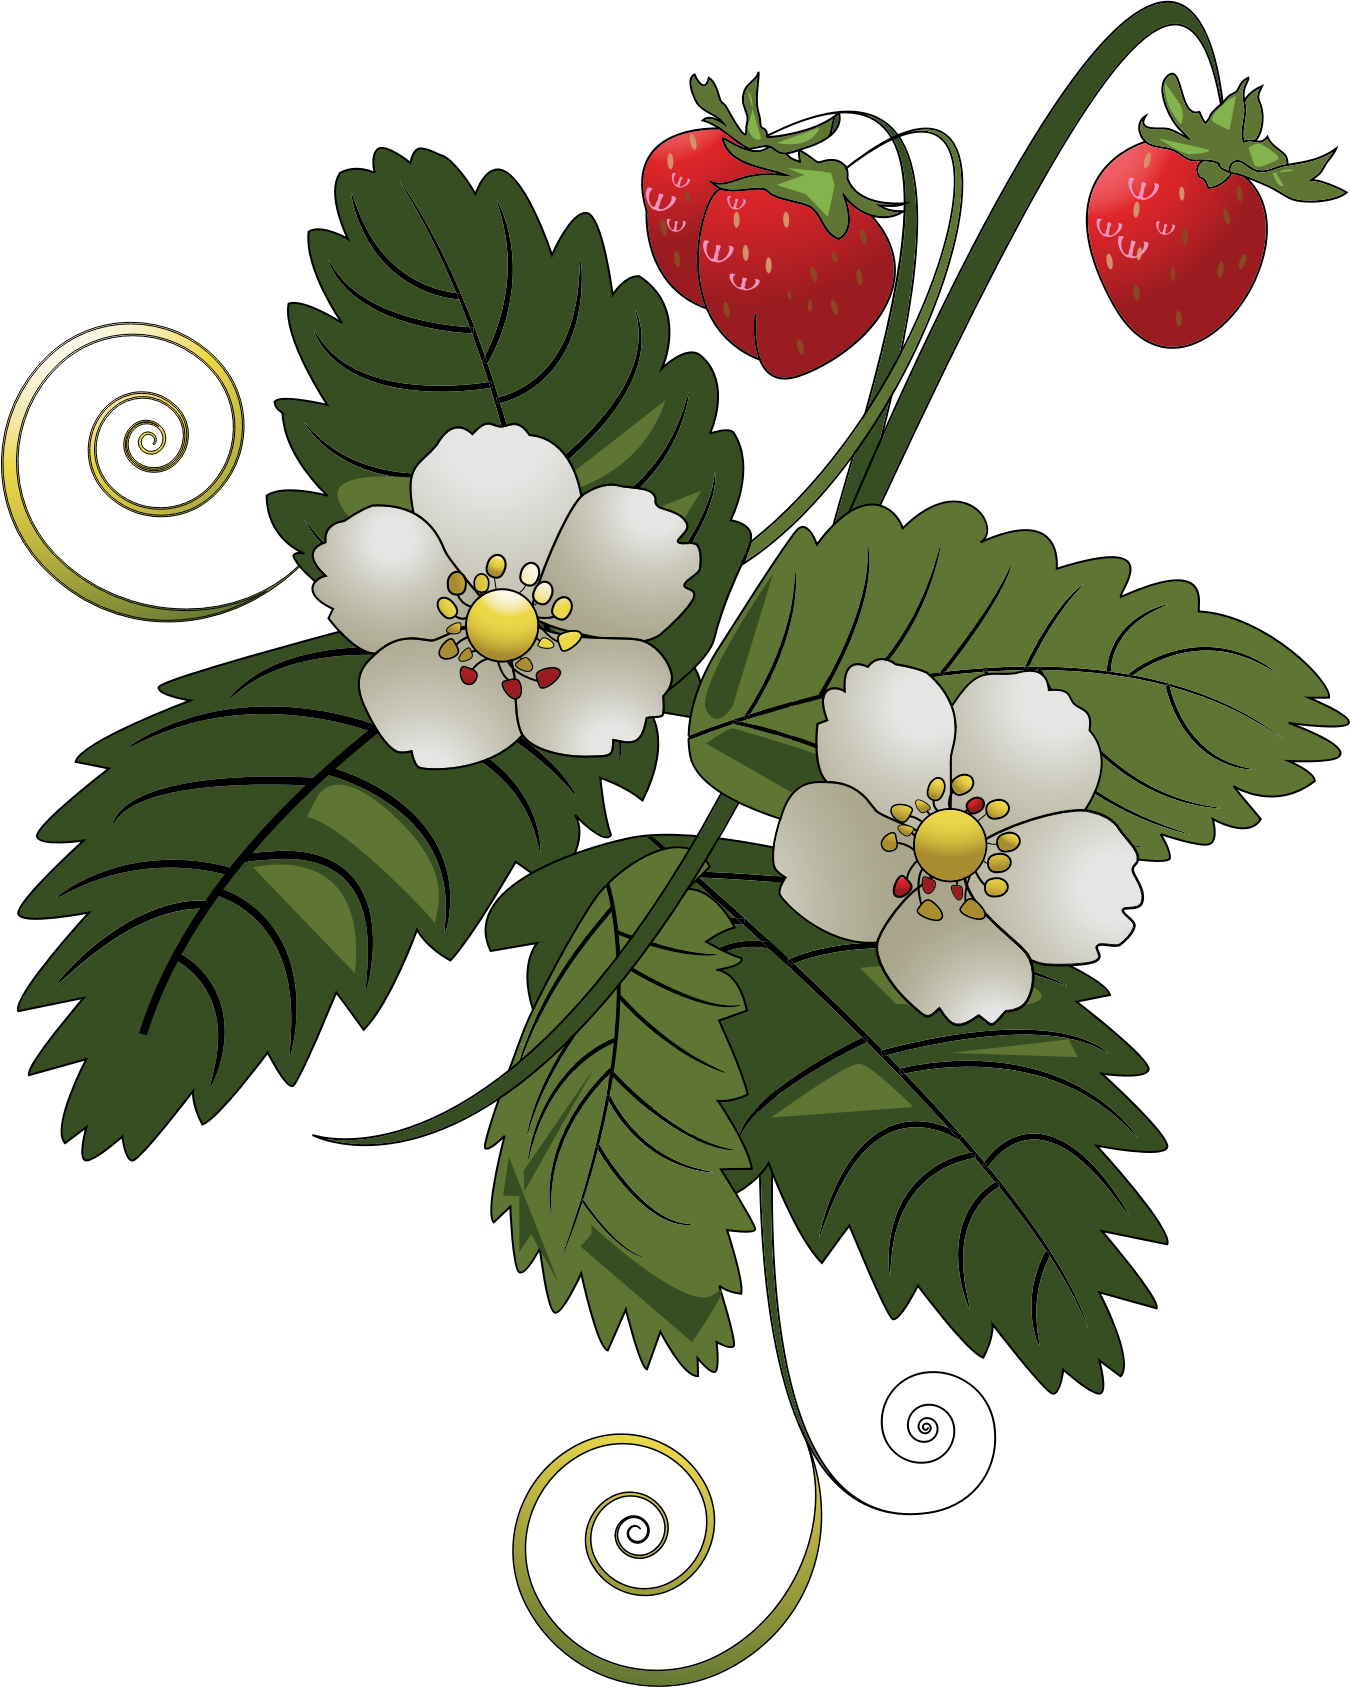 Plant clipart fruit plant. Strawberry big image png